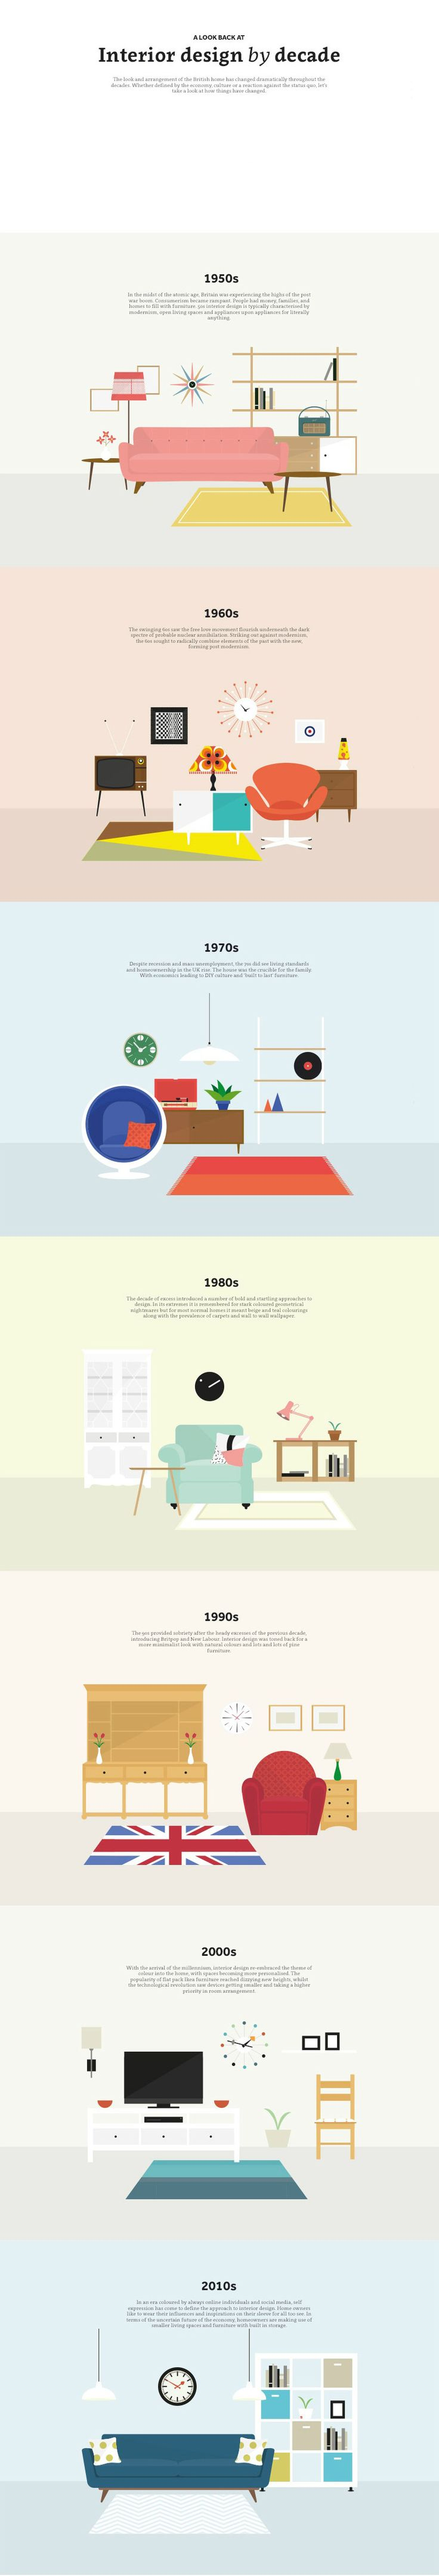 Interior Design By Decade | Visual.ly